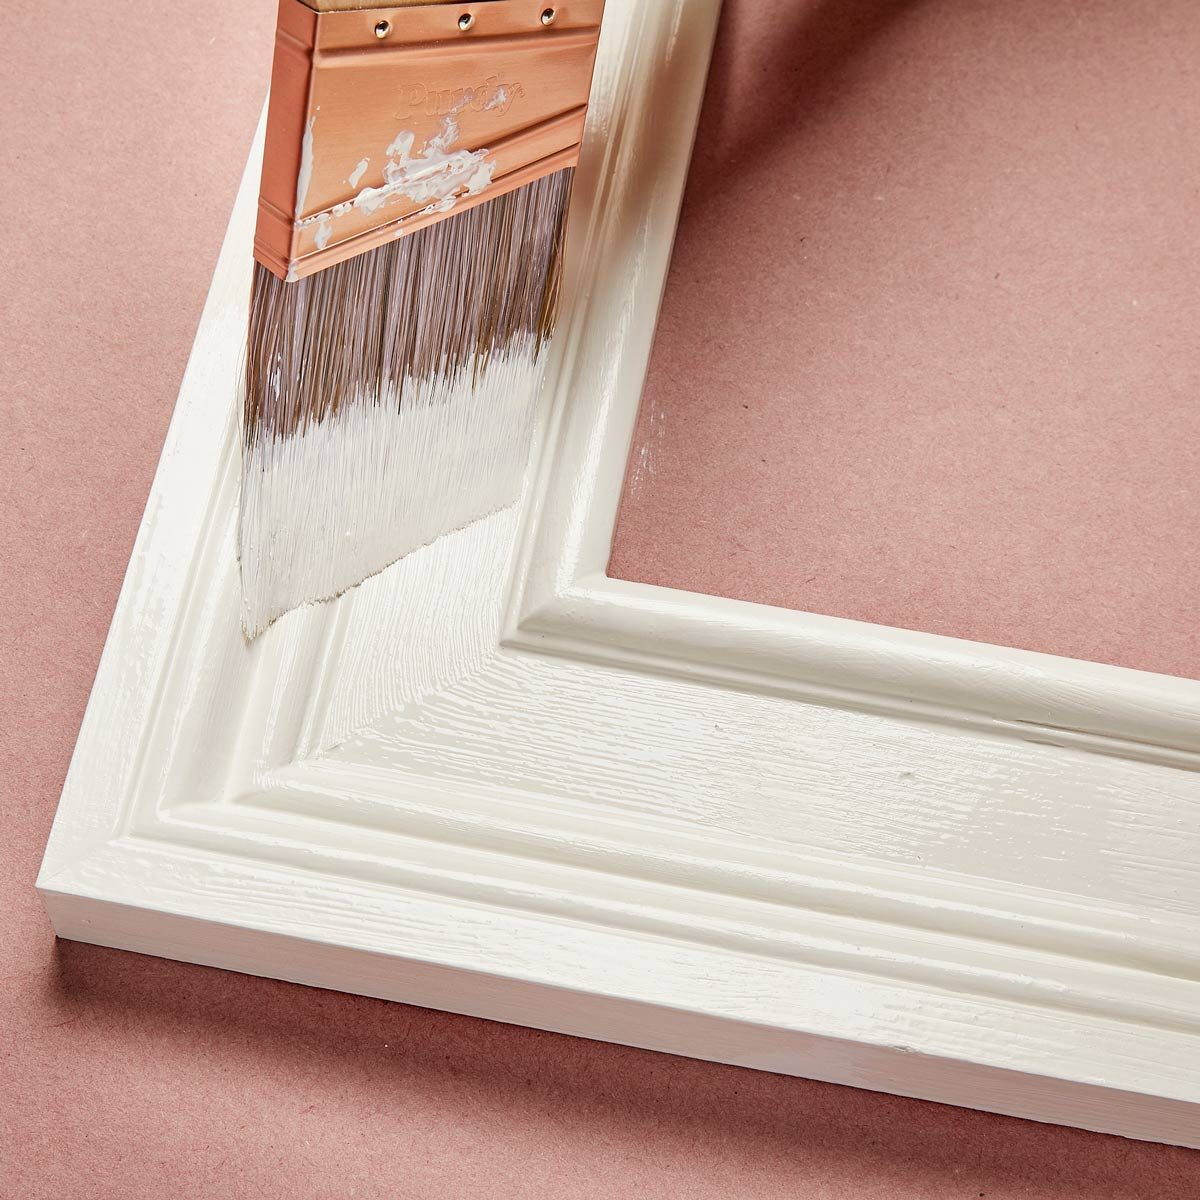 workability of trim paint